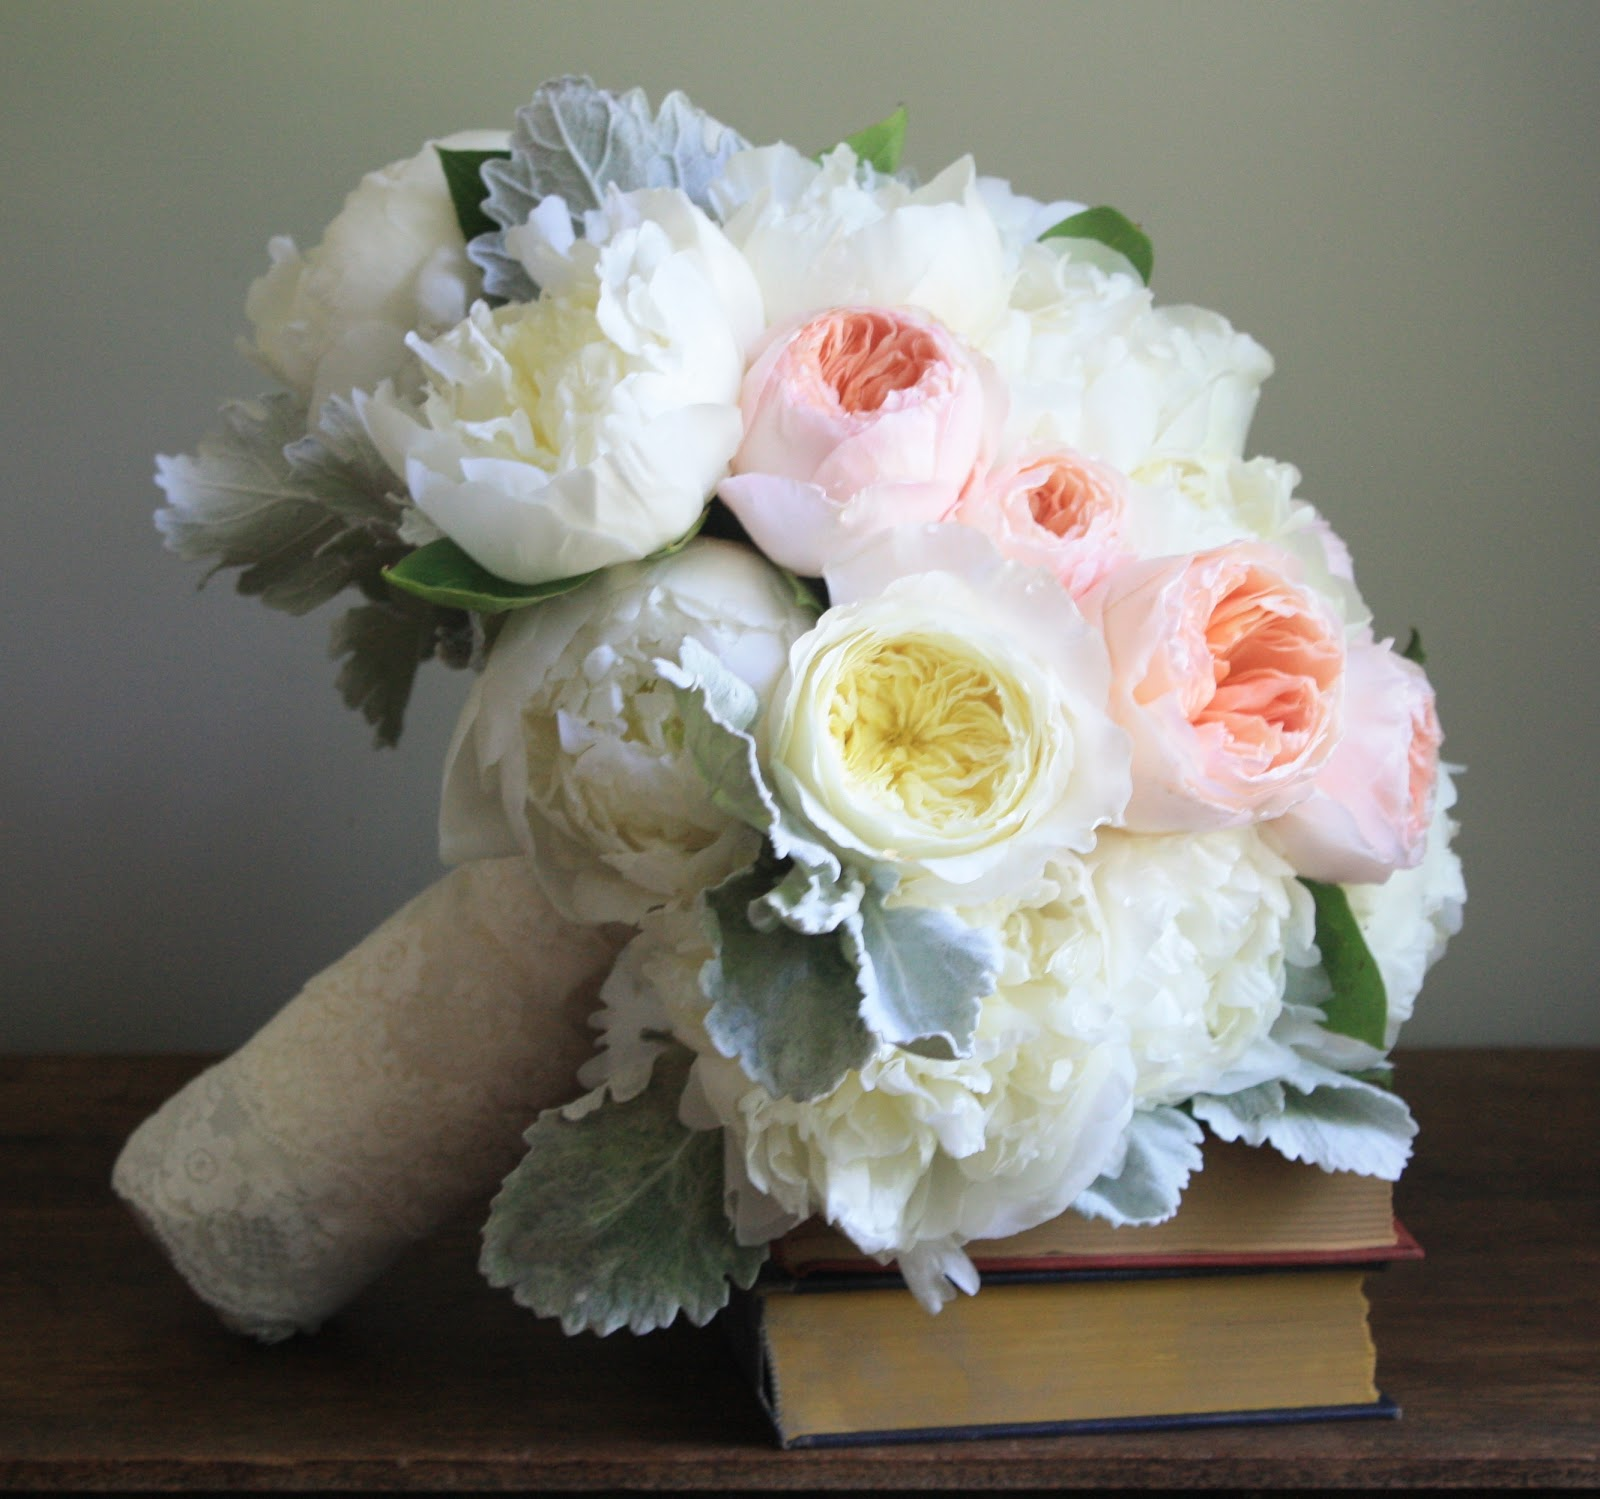 garden rose peony bouquet garden rose bouquet david austin rose bouquet juliet - White Patience Garden Rose